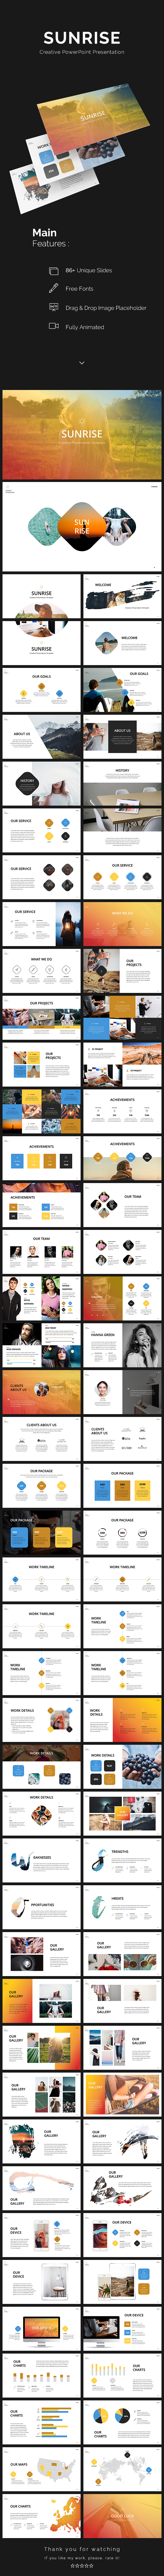 Sunrise PowerPoint Presentation - PowerPoint Templates Presentation Templates